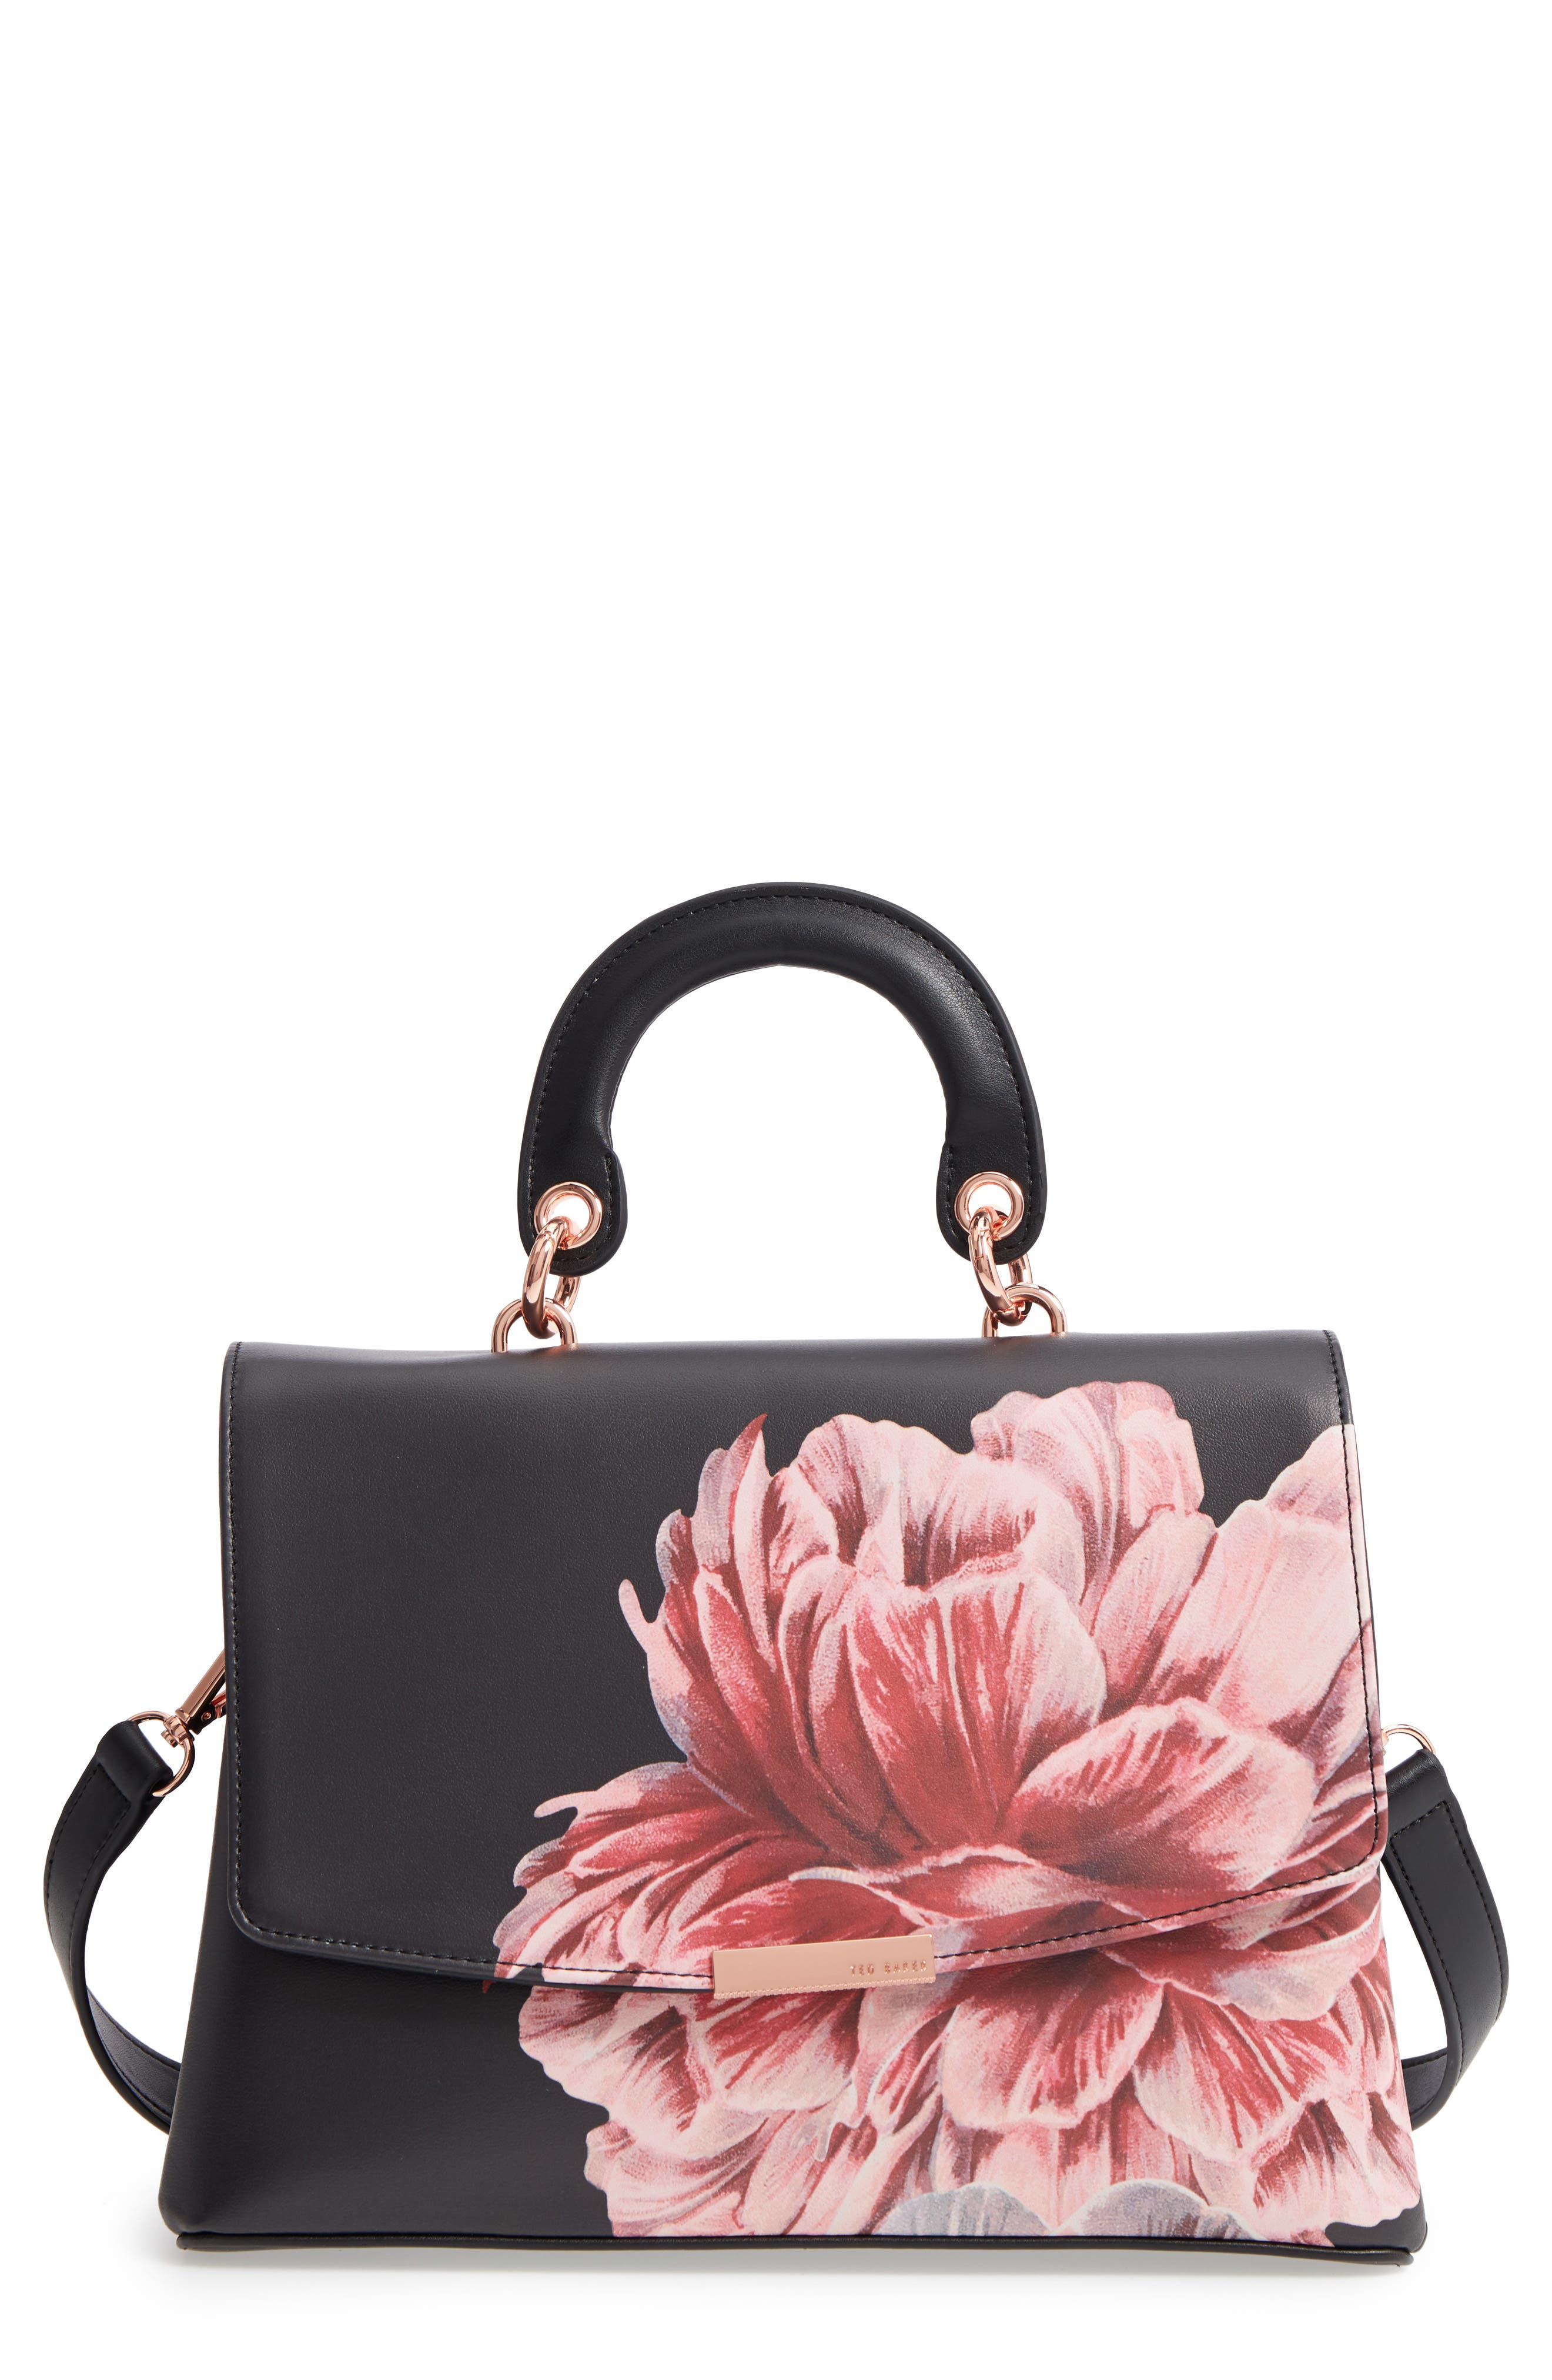 TED BAKER LONDON Tranquility Lady Bag Top Handle Satchel, Main, color, 001